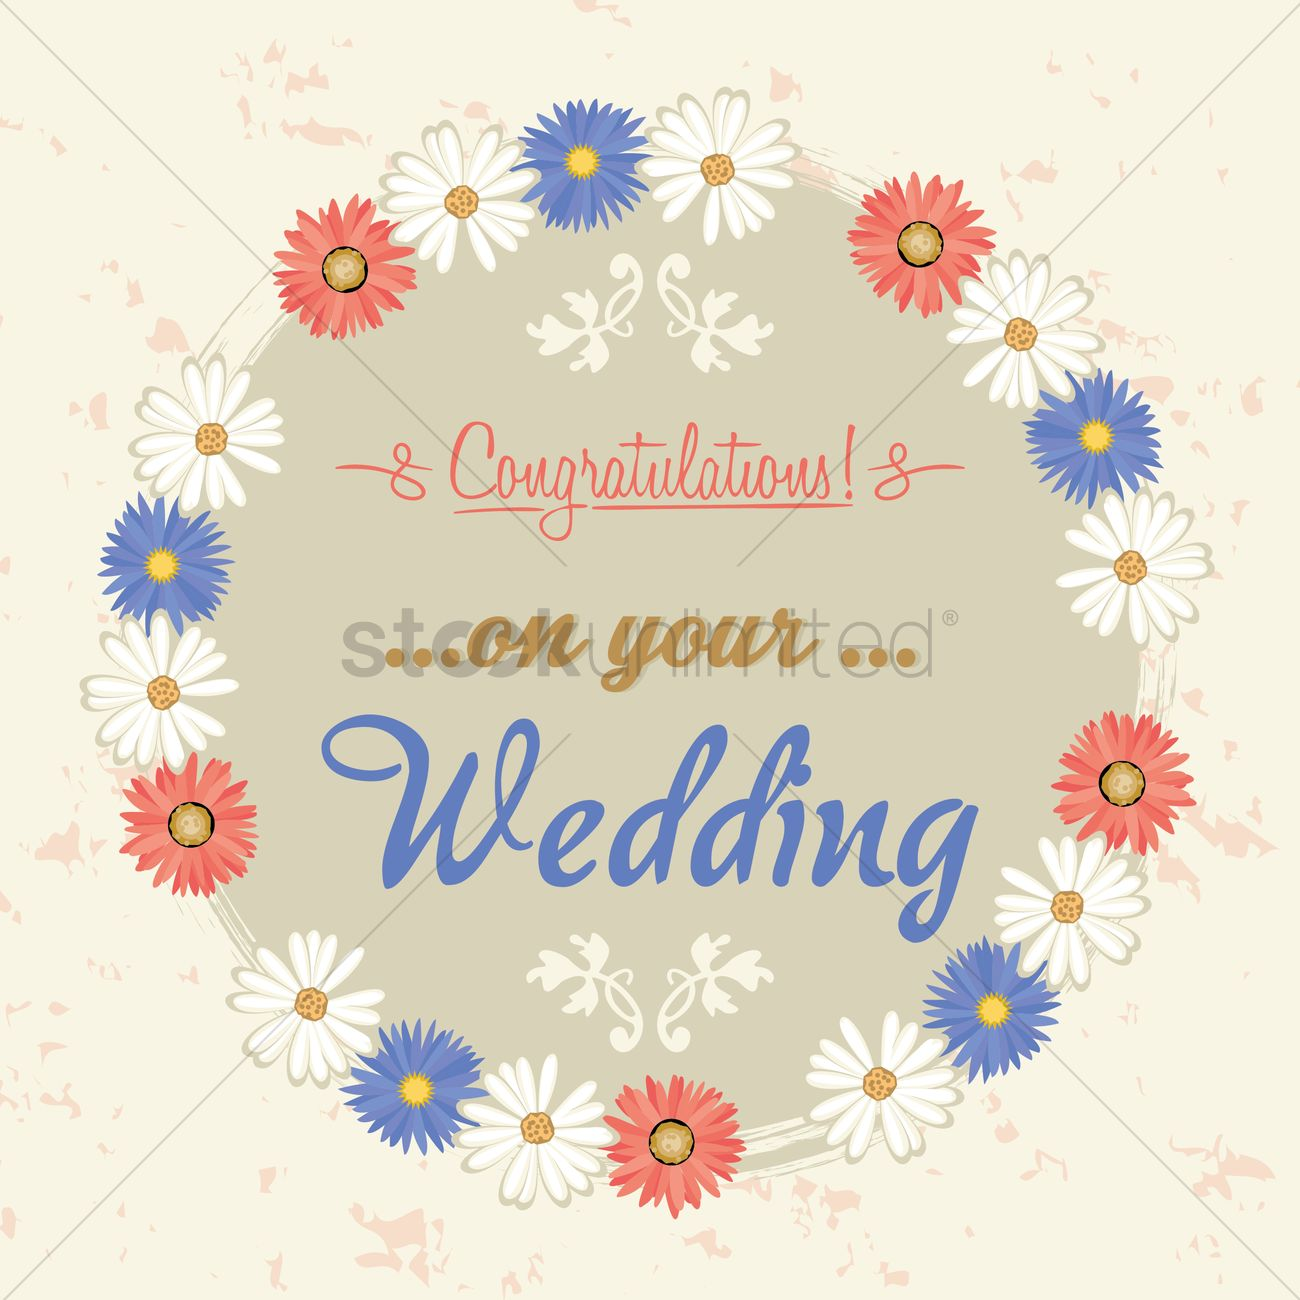 Congrats On Your Wedding: Congratulations On Your Wedding Label Vector Image